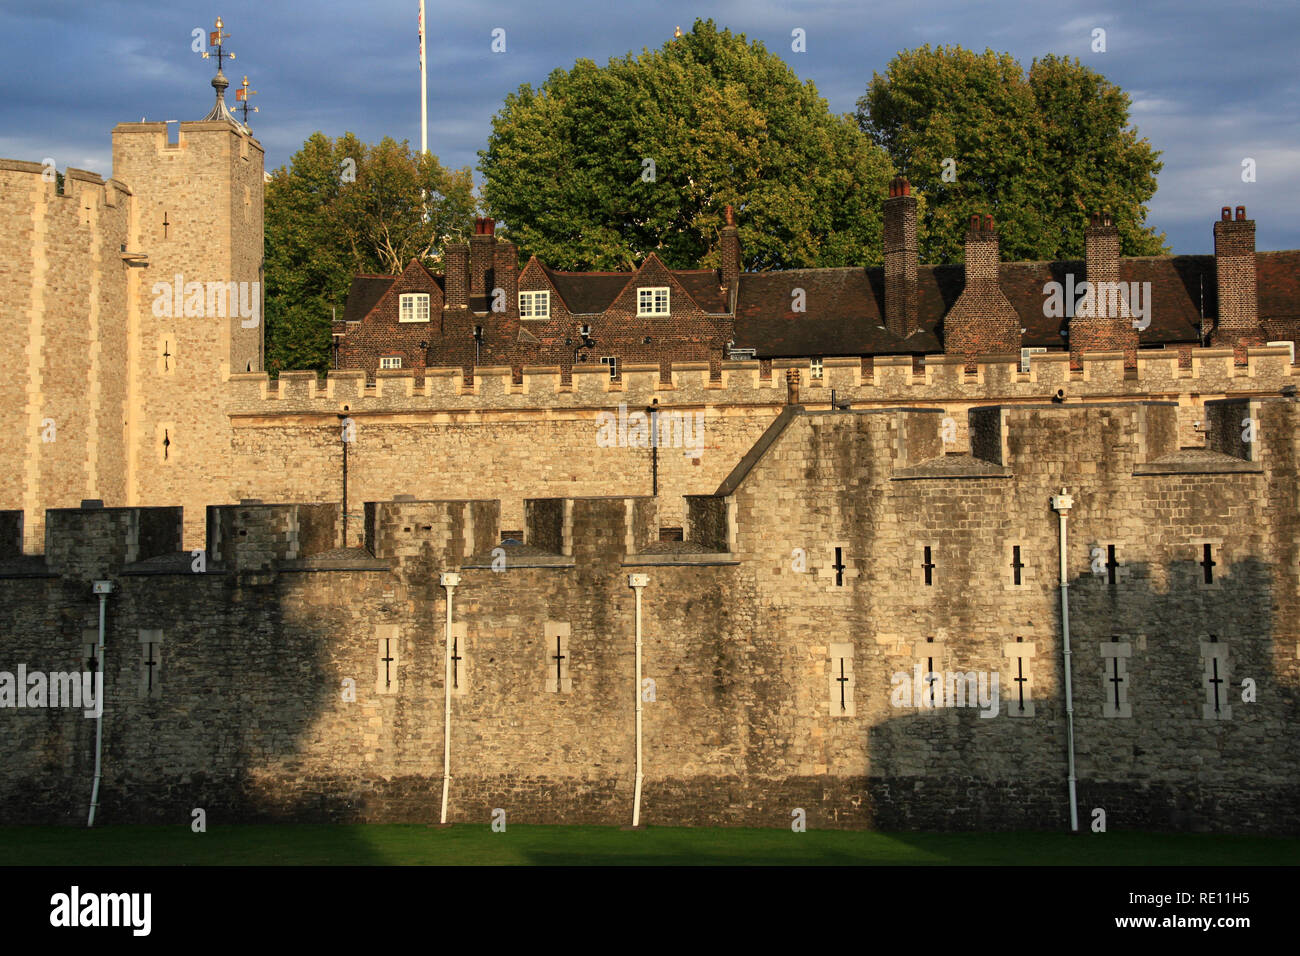 Rooftop and Chimneys of the Queen's House behind the fortified wall of Her Majesty's Royal Palace and Fortress of the Tower of London, UK - Stock Image